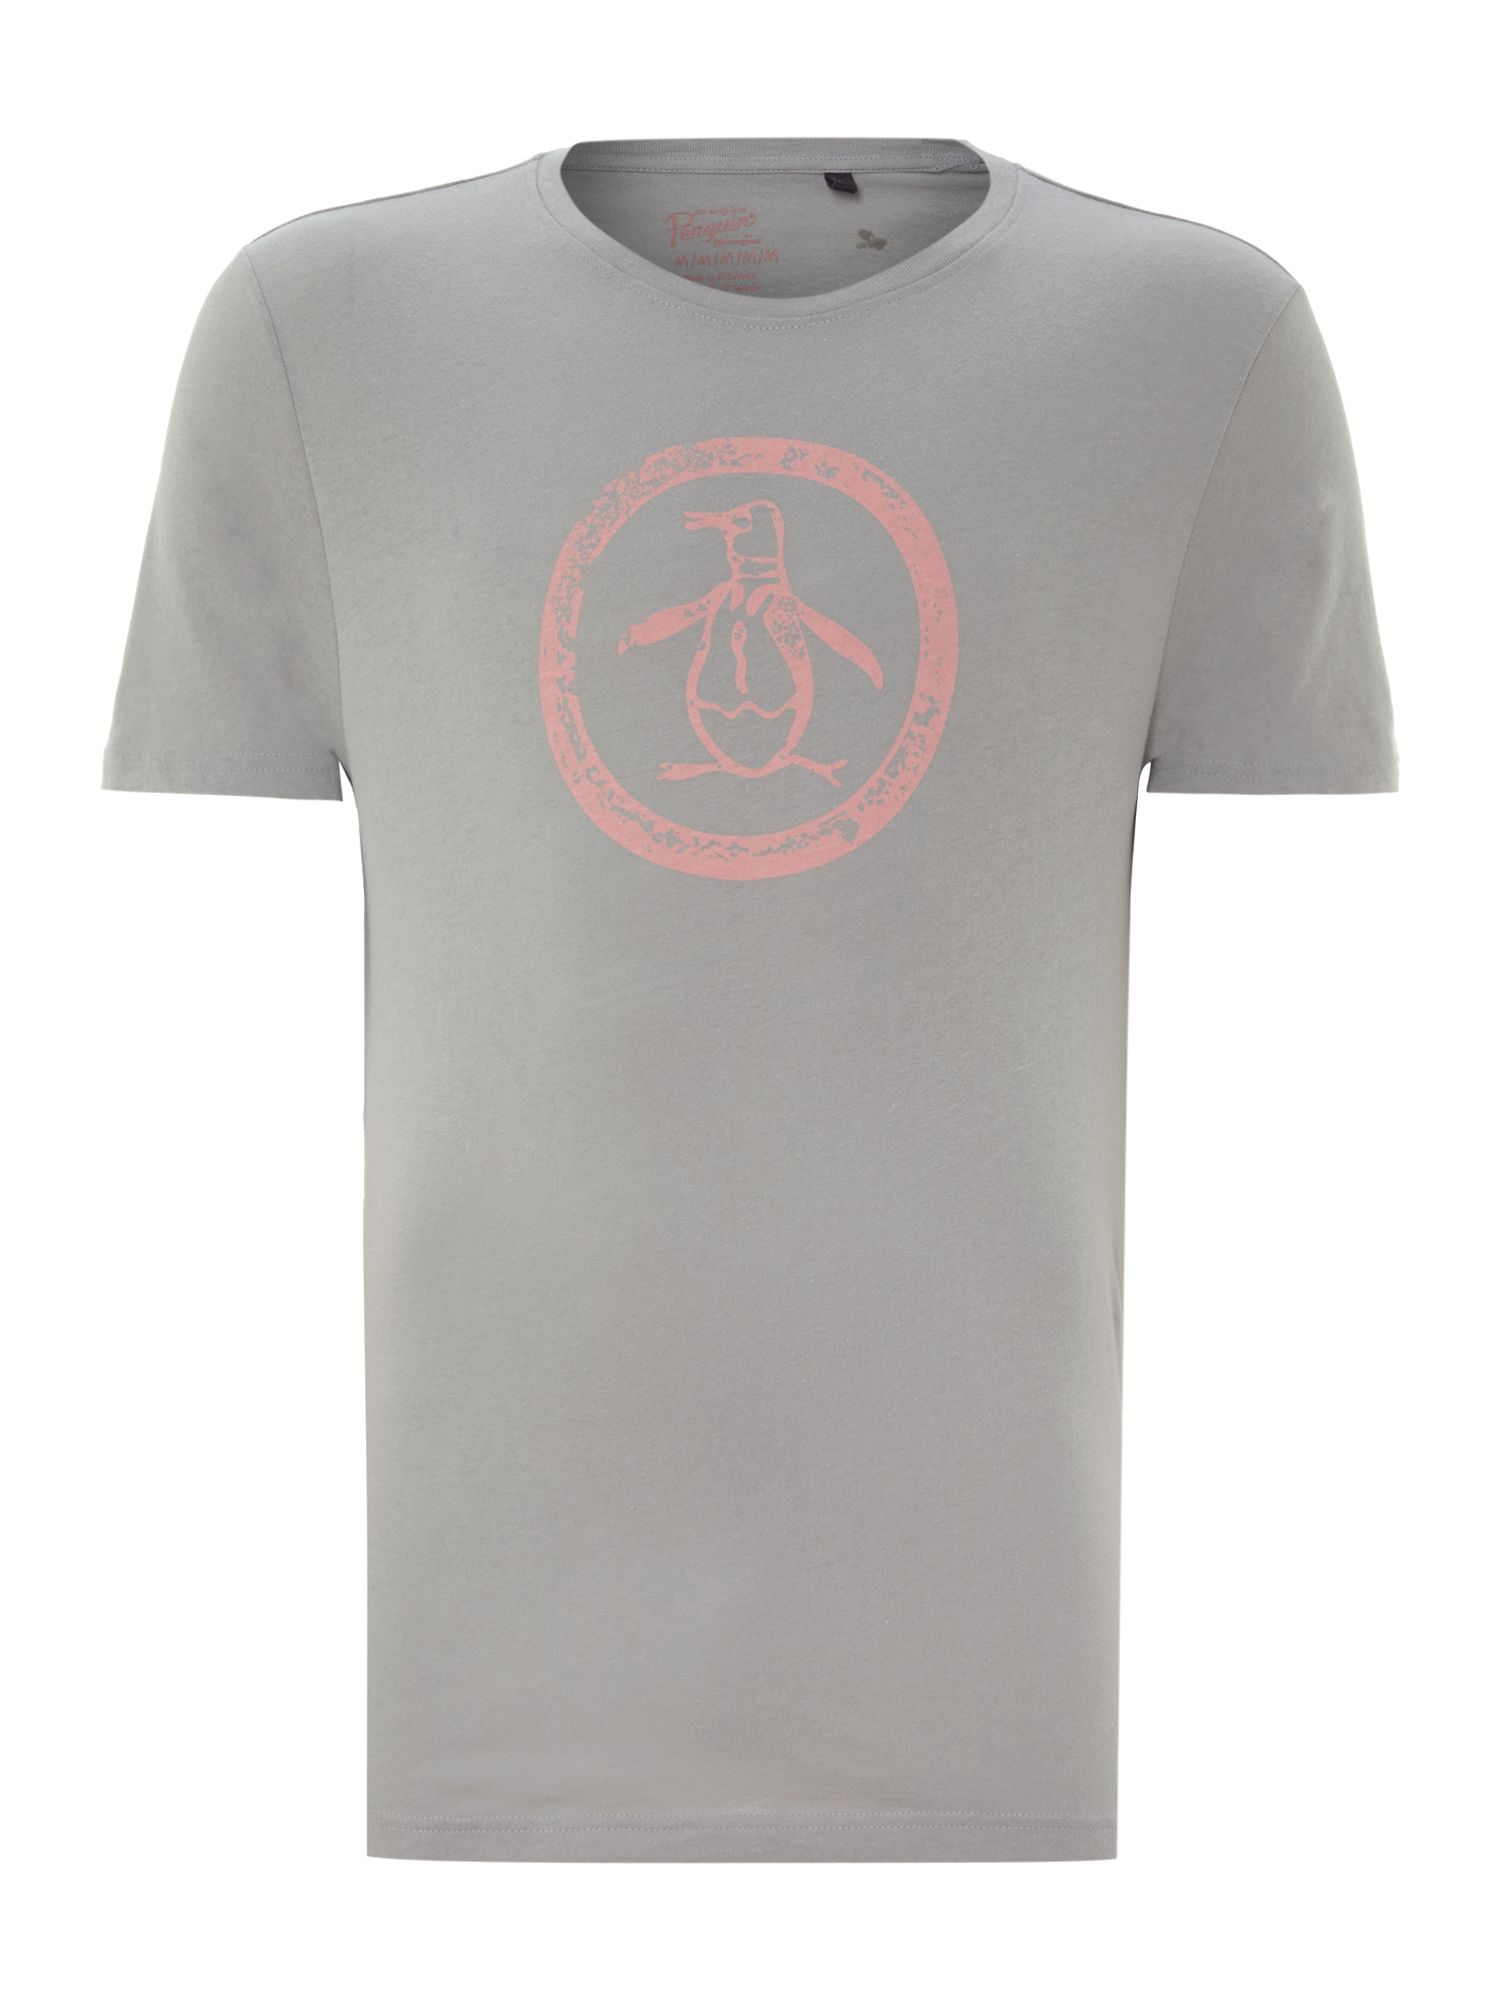 Distressed logo circle t-shirt